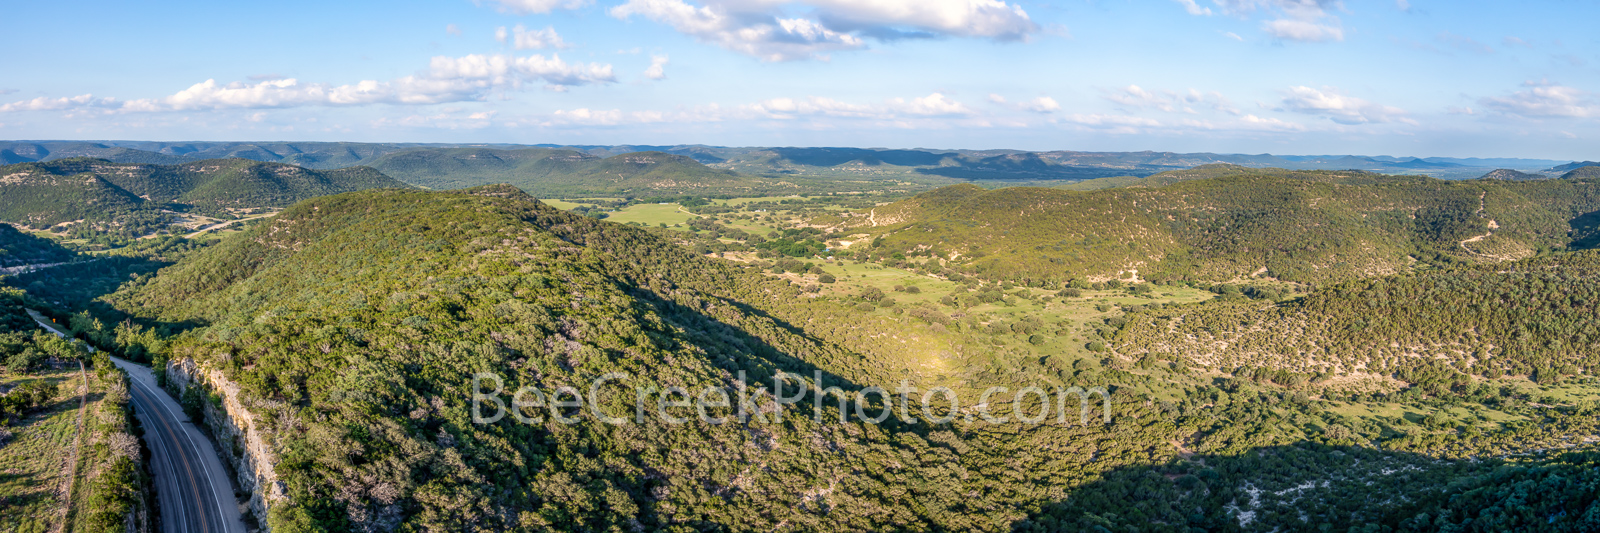 Road Through the Texas Hill Country - We captured this aerial image of a road cut through the Texas hill country near Leaky and...